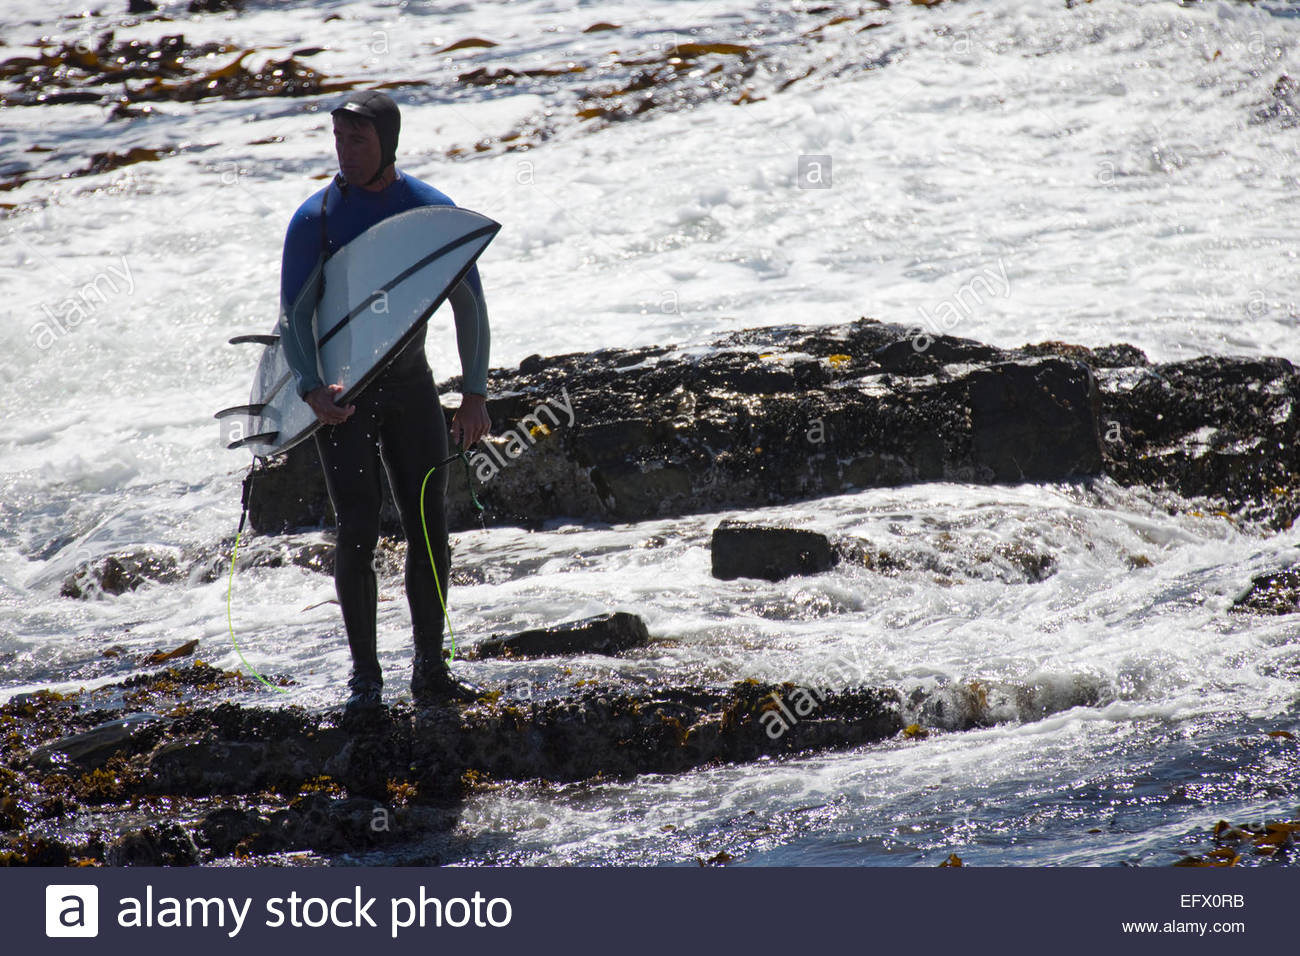 Man with surfboard standing on rocks - Stock Image